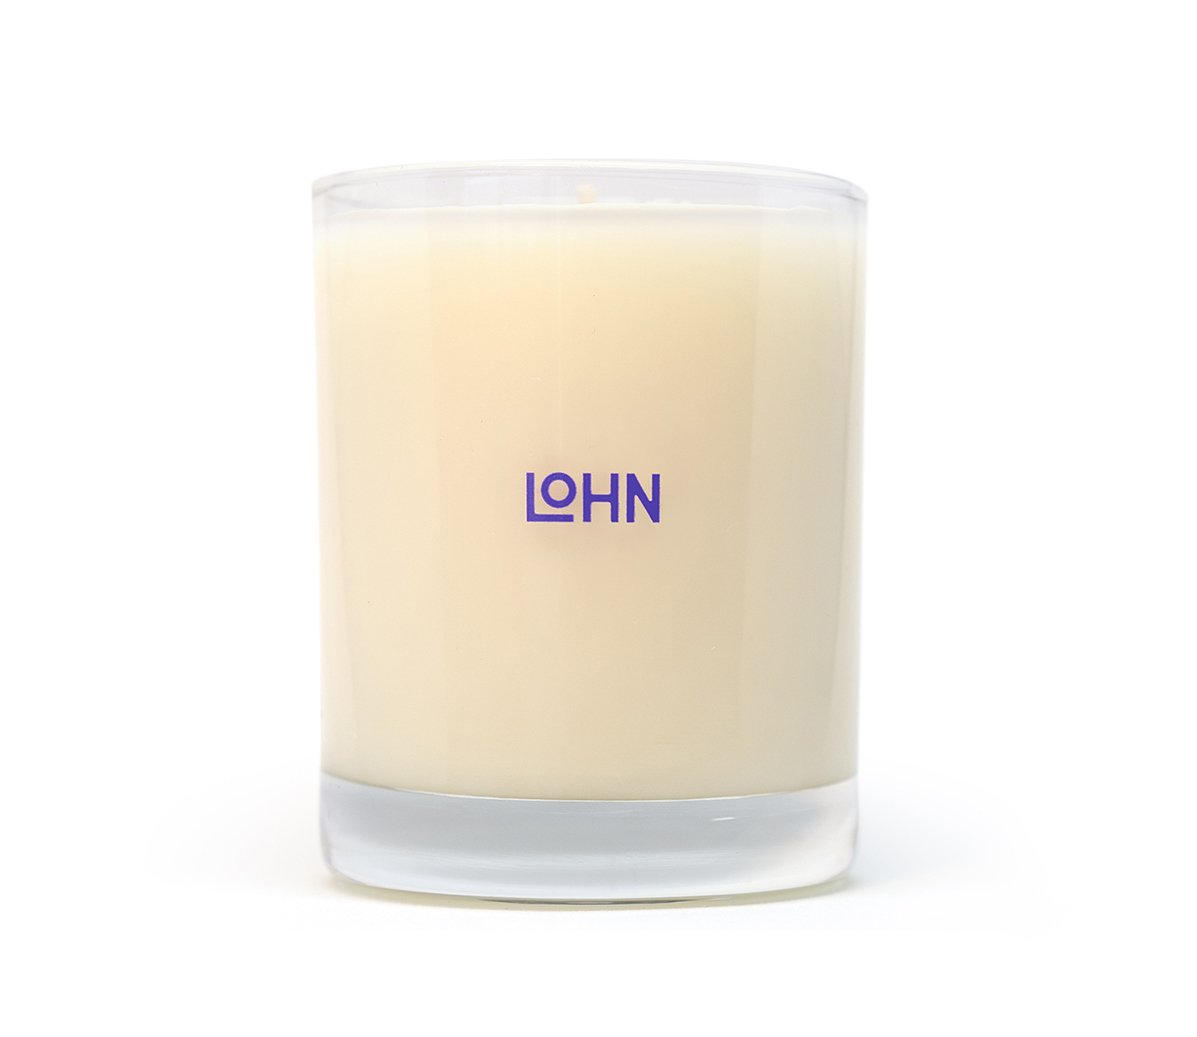 LoHN Candles - ORO